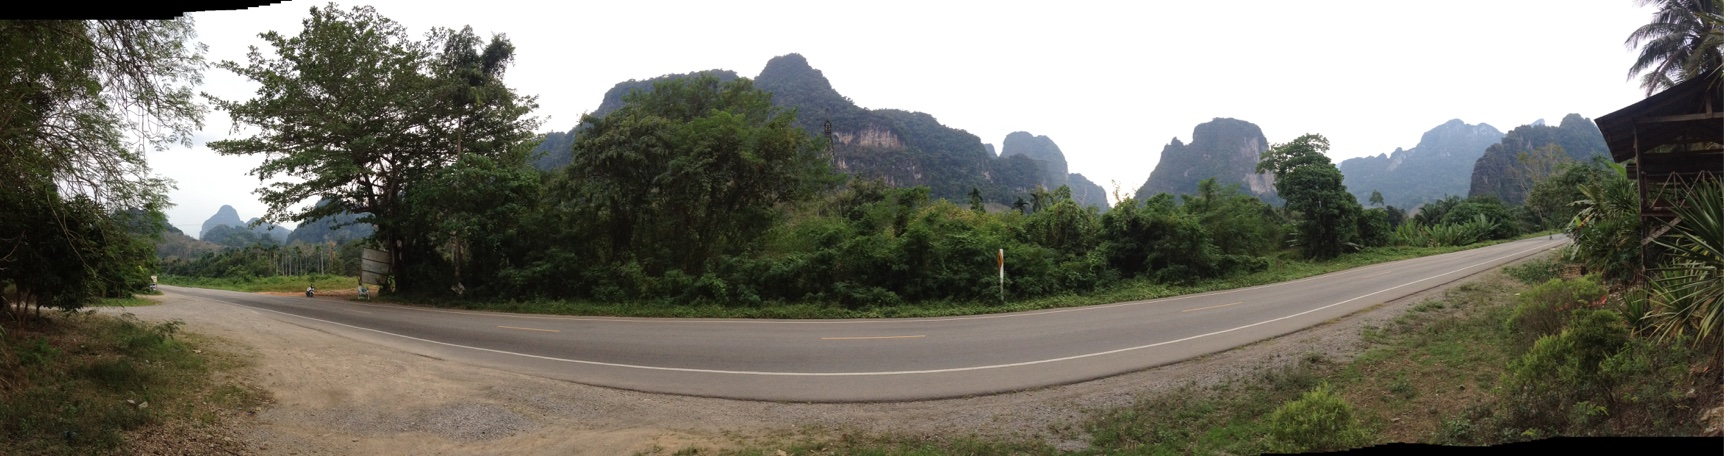 Limestone karst formations in Khao Sok National Park